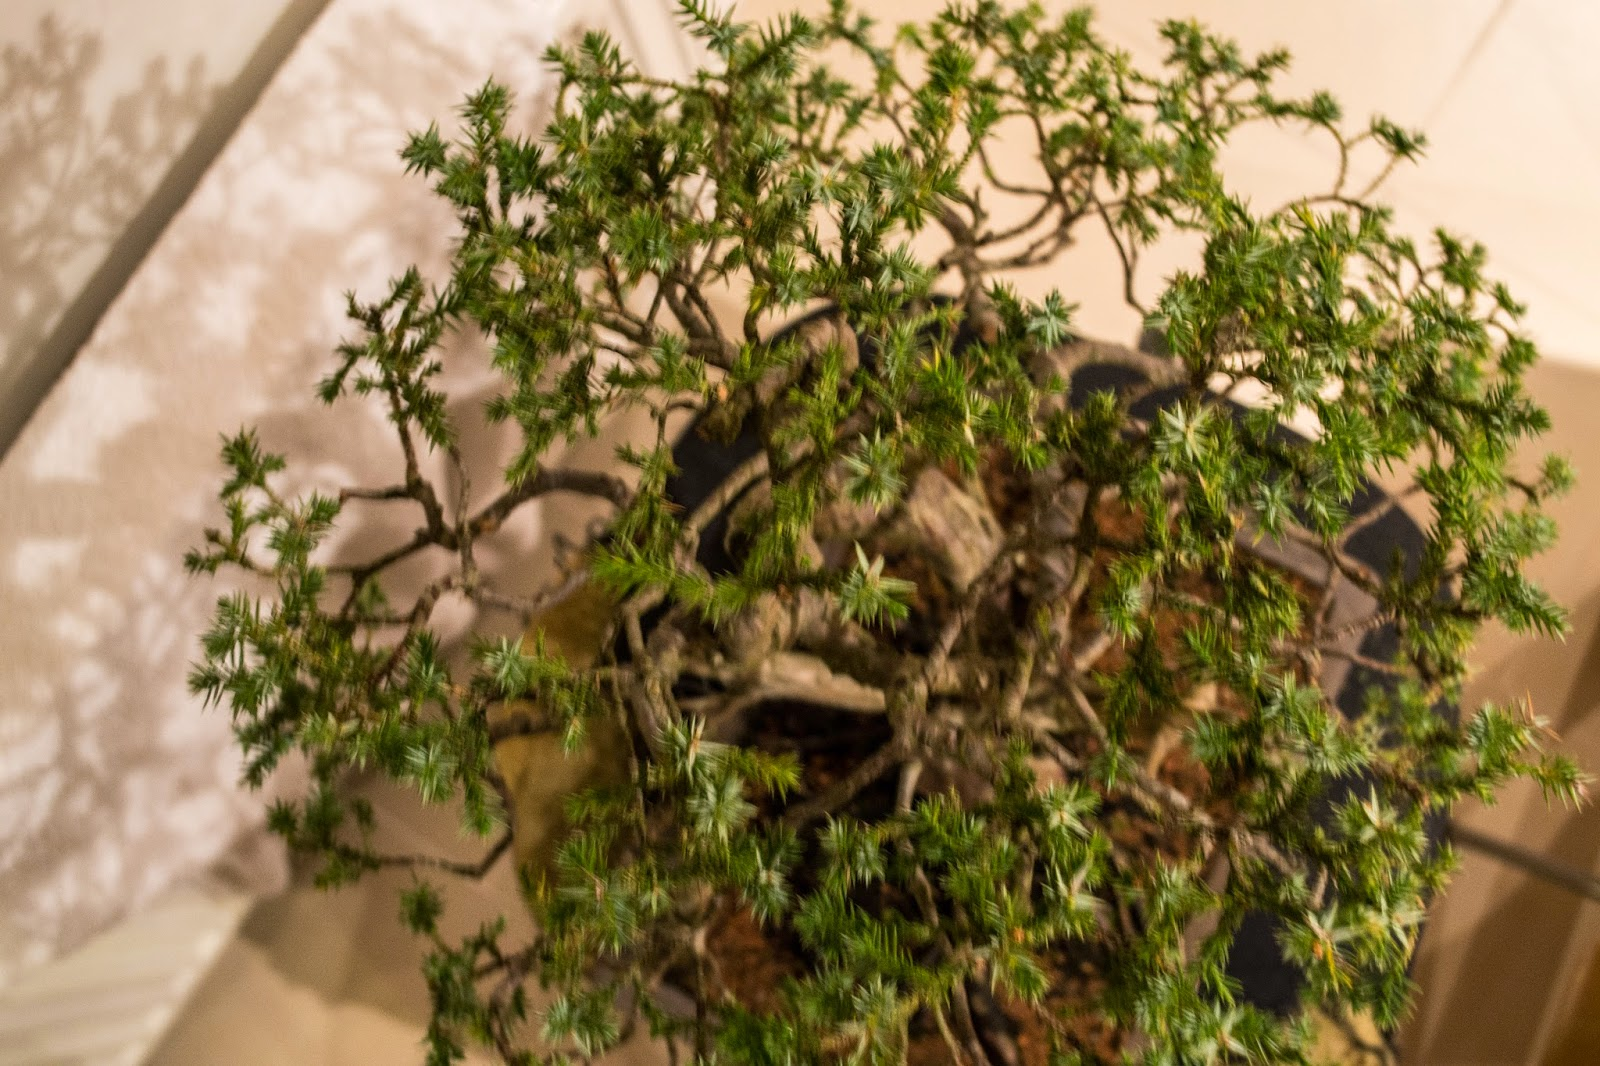 Dj Bonsai Juniperus Squamata Meyeri Pt3 Wiring Juniper Tree What We Are Doing Here Is Leaving The Foliage That Investing Energy In Developing To Retain Vigour While Clearing A Space For Light Help